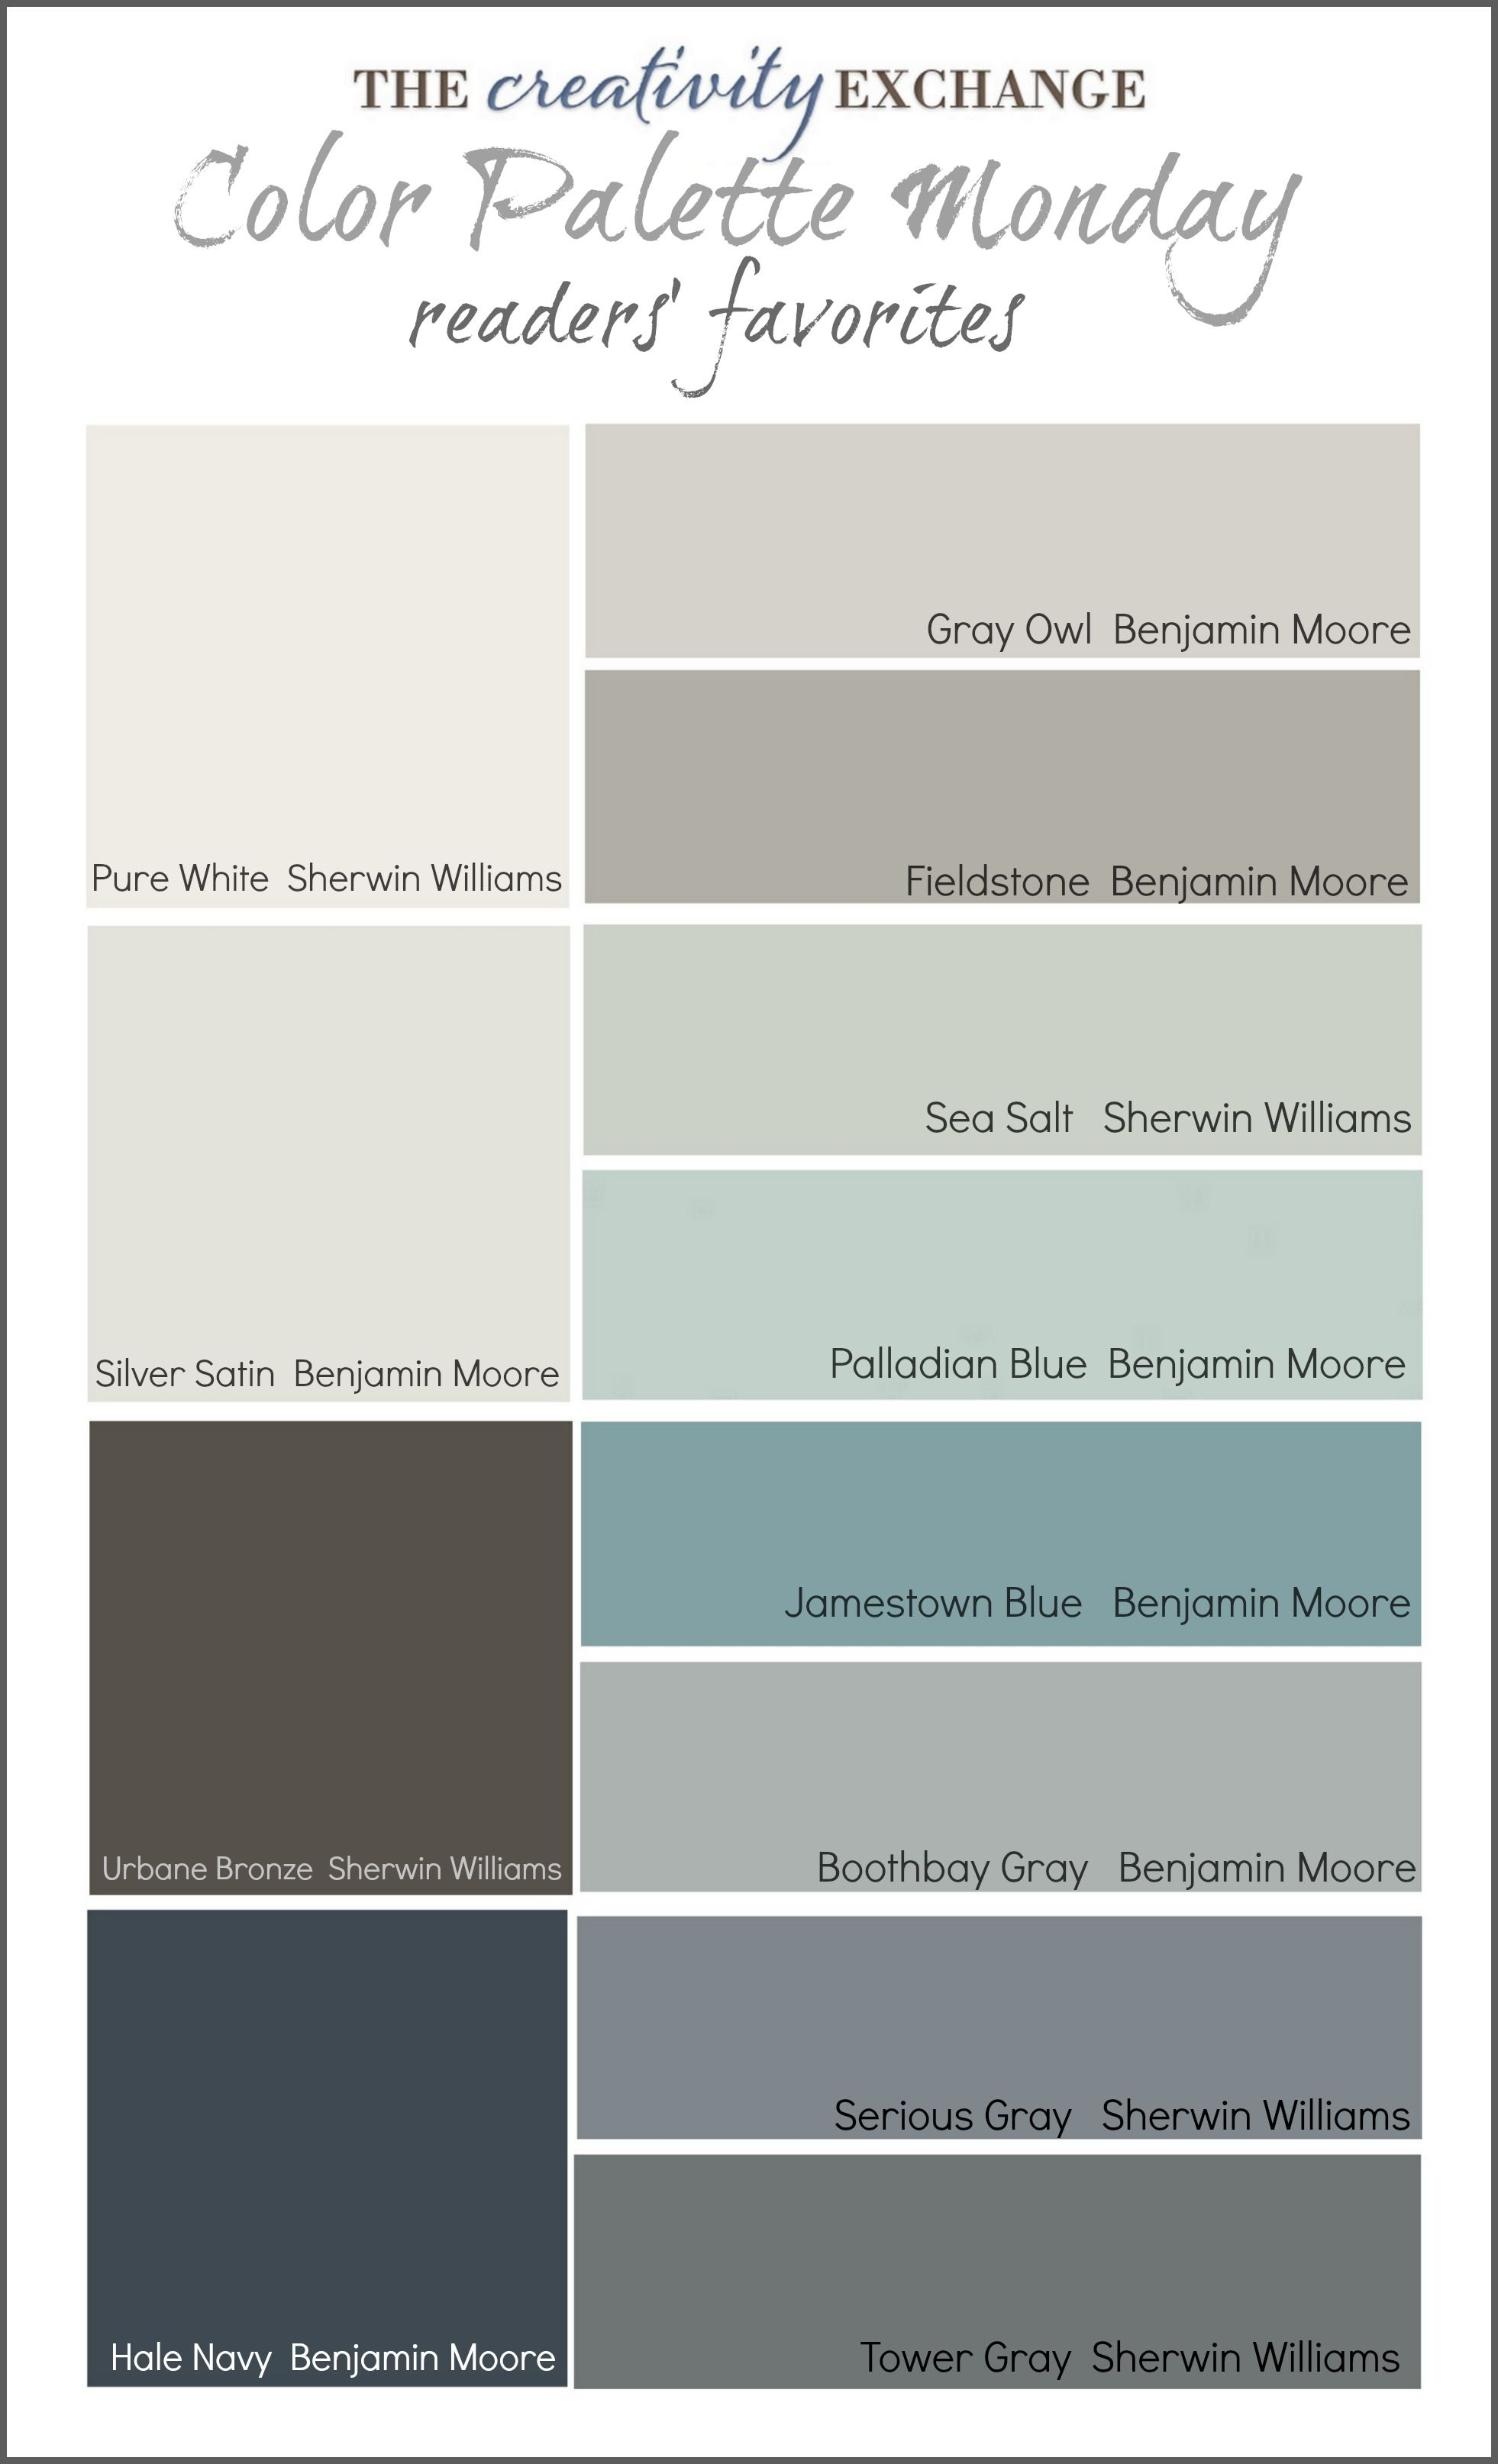 Readers Favorite Paint Colors Color Palette Monday Favorite Paint Colors Paint Colors For Home Favorite Paint